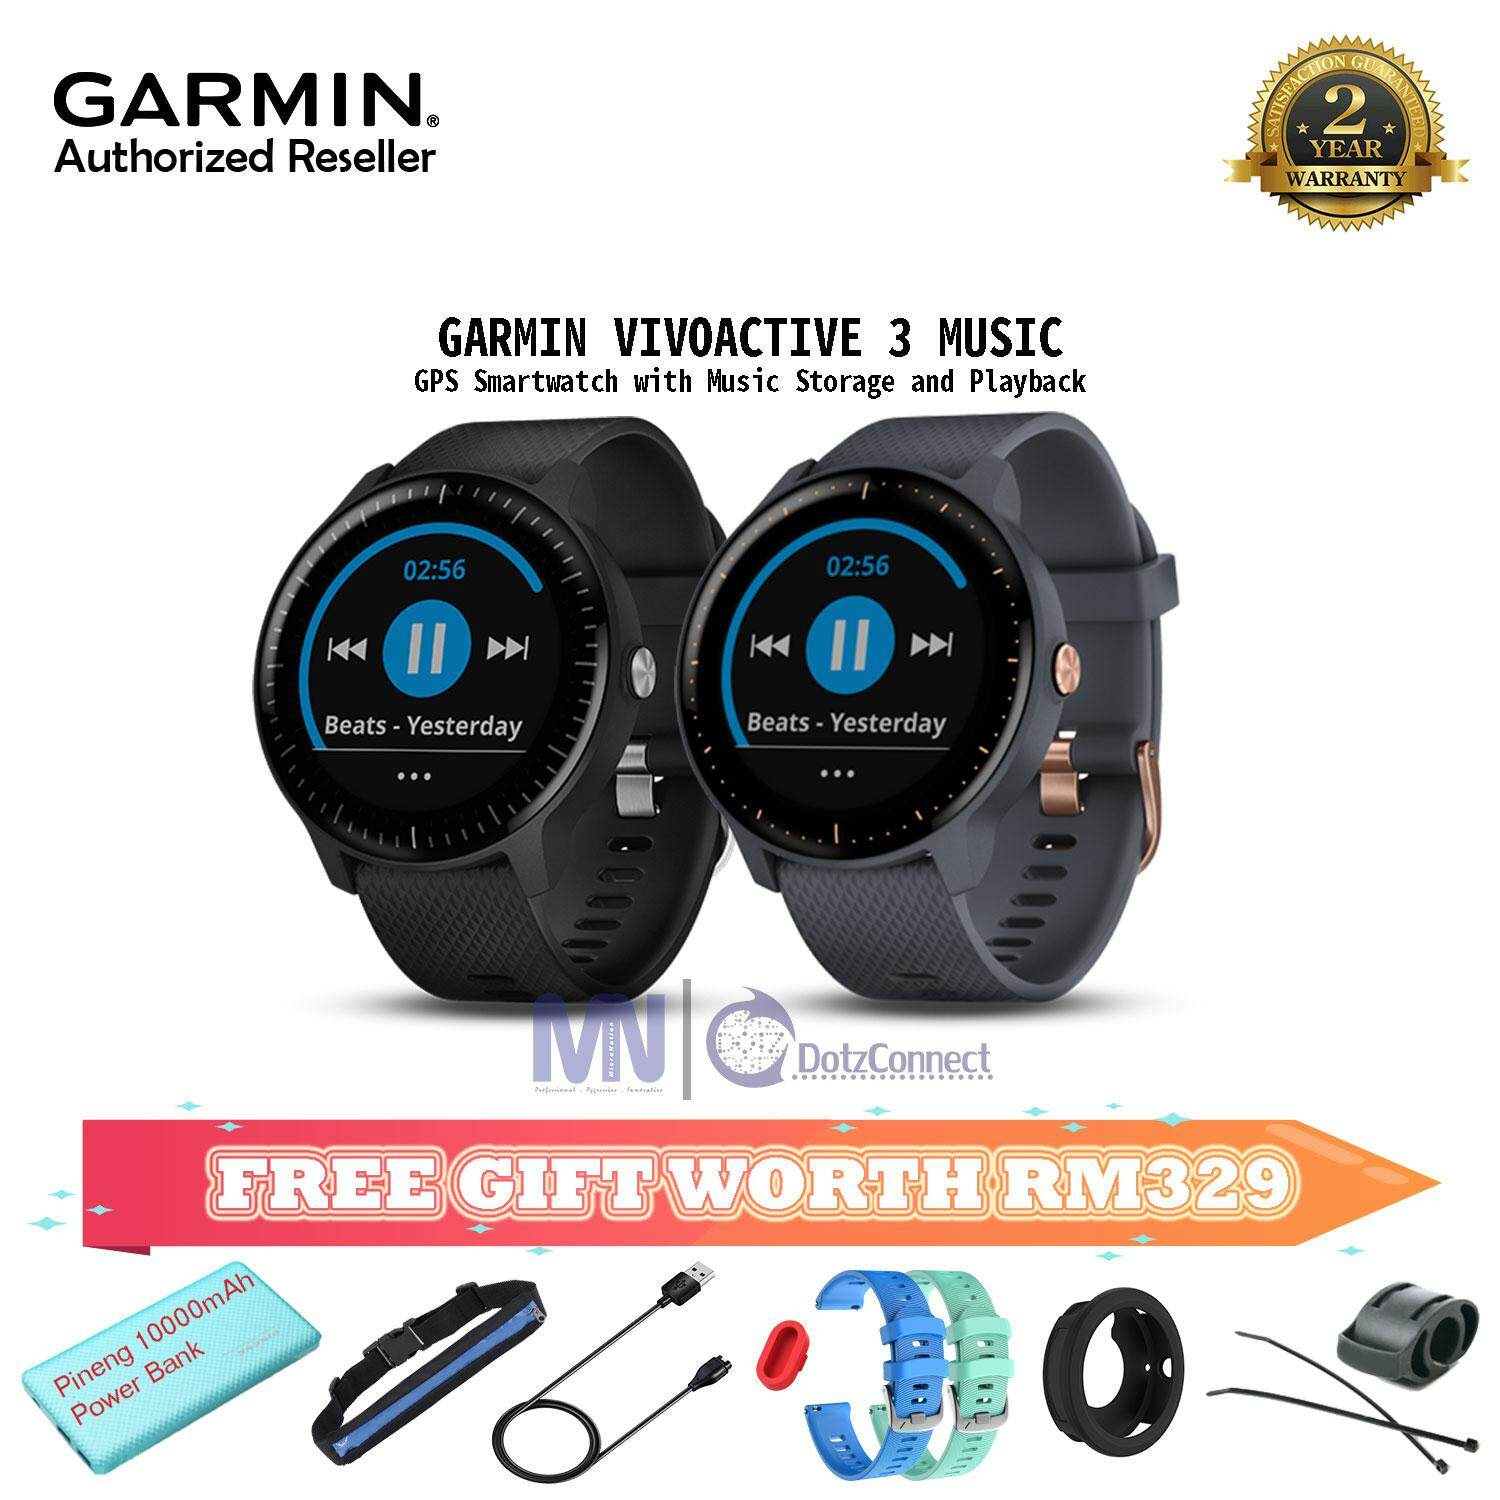 Garmin Vivoactive 3 / Vivoactive 3 Music GPS Smartwatch with Wrist-based Heart Rate-(with music)